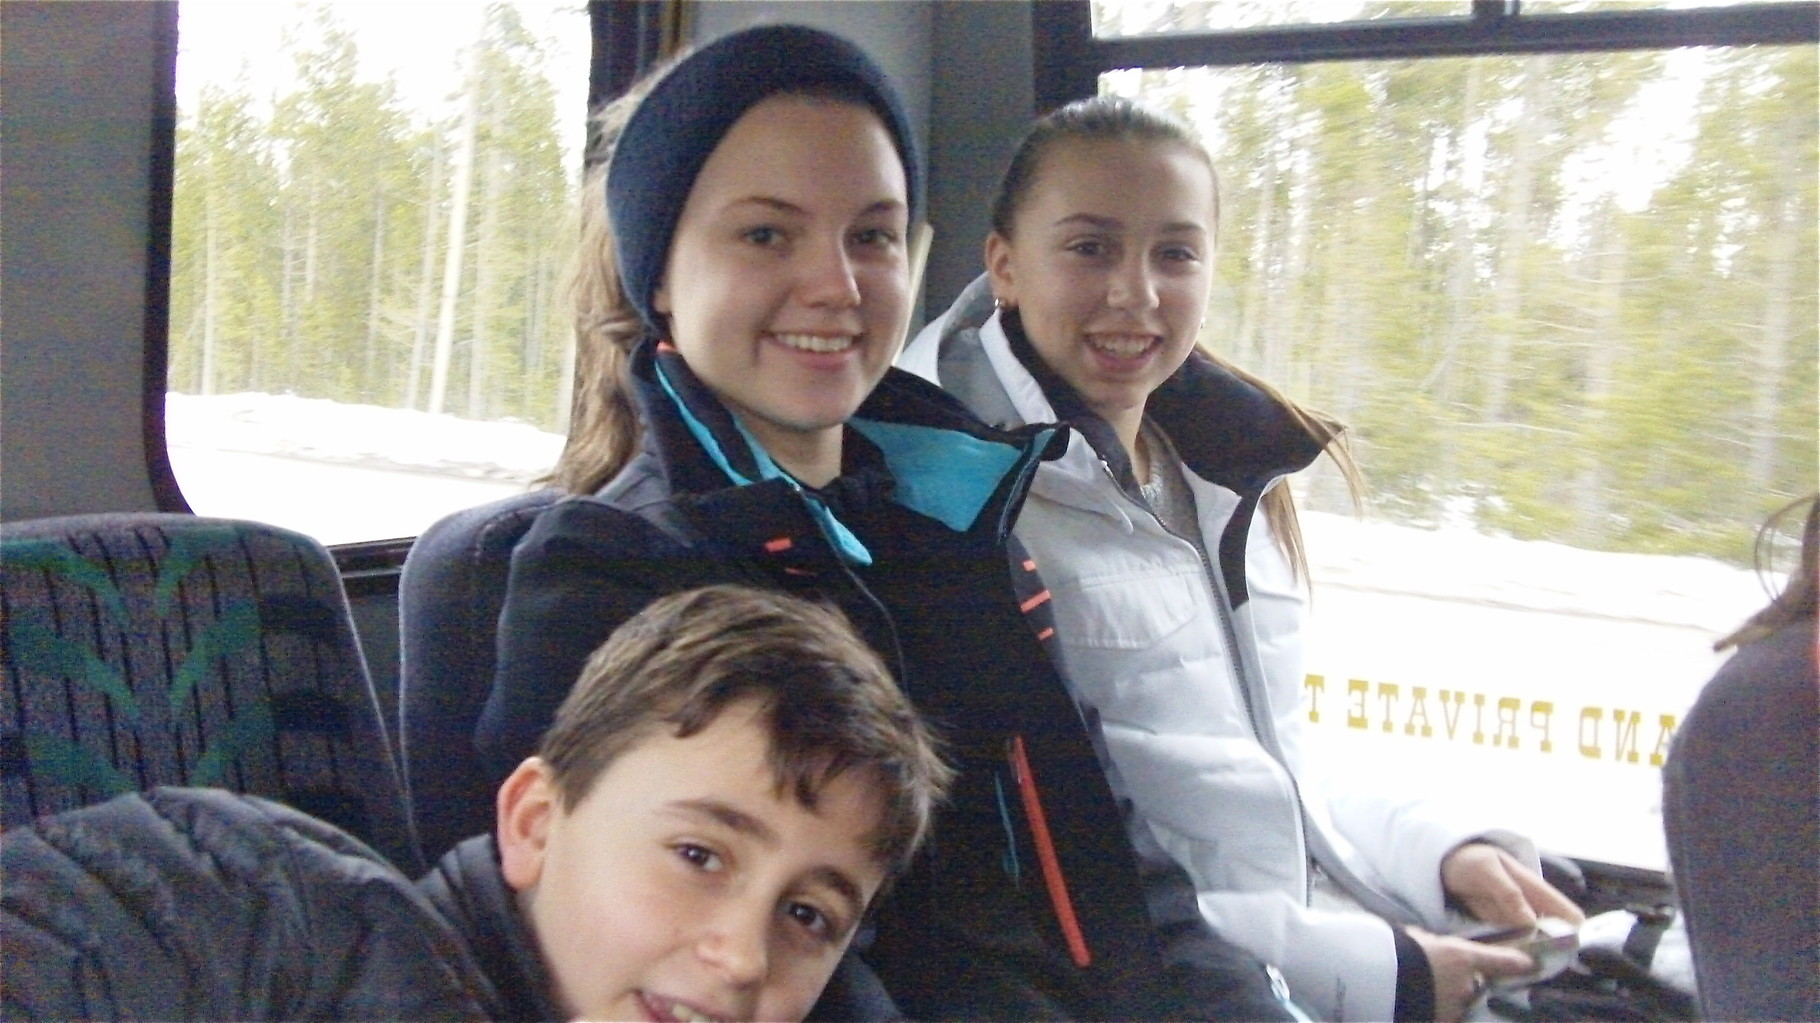 3-15-15 Trip to Yellowstone National Park; Stuart 3d, Kate, Gabby